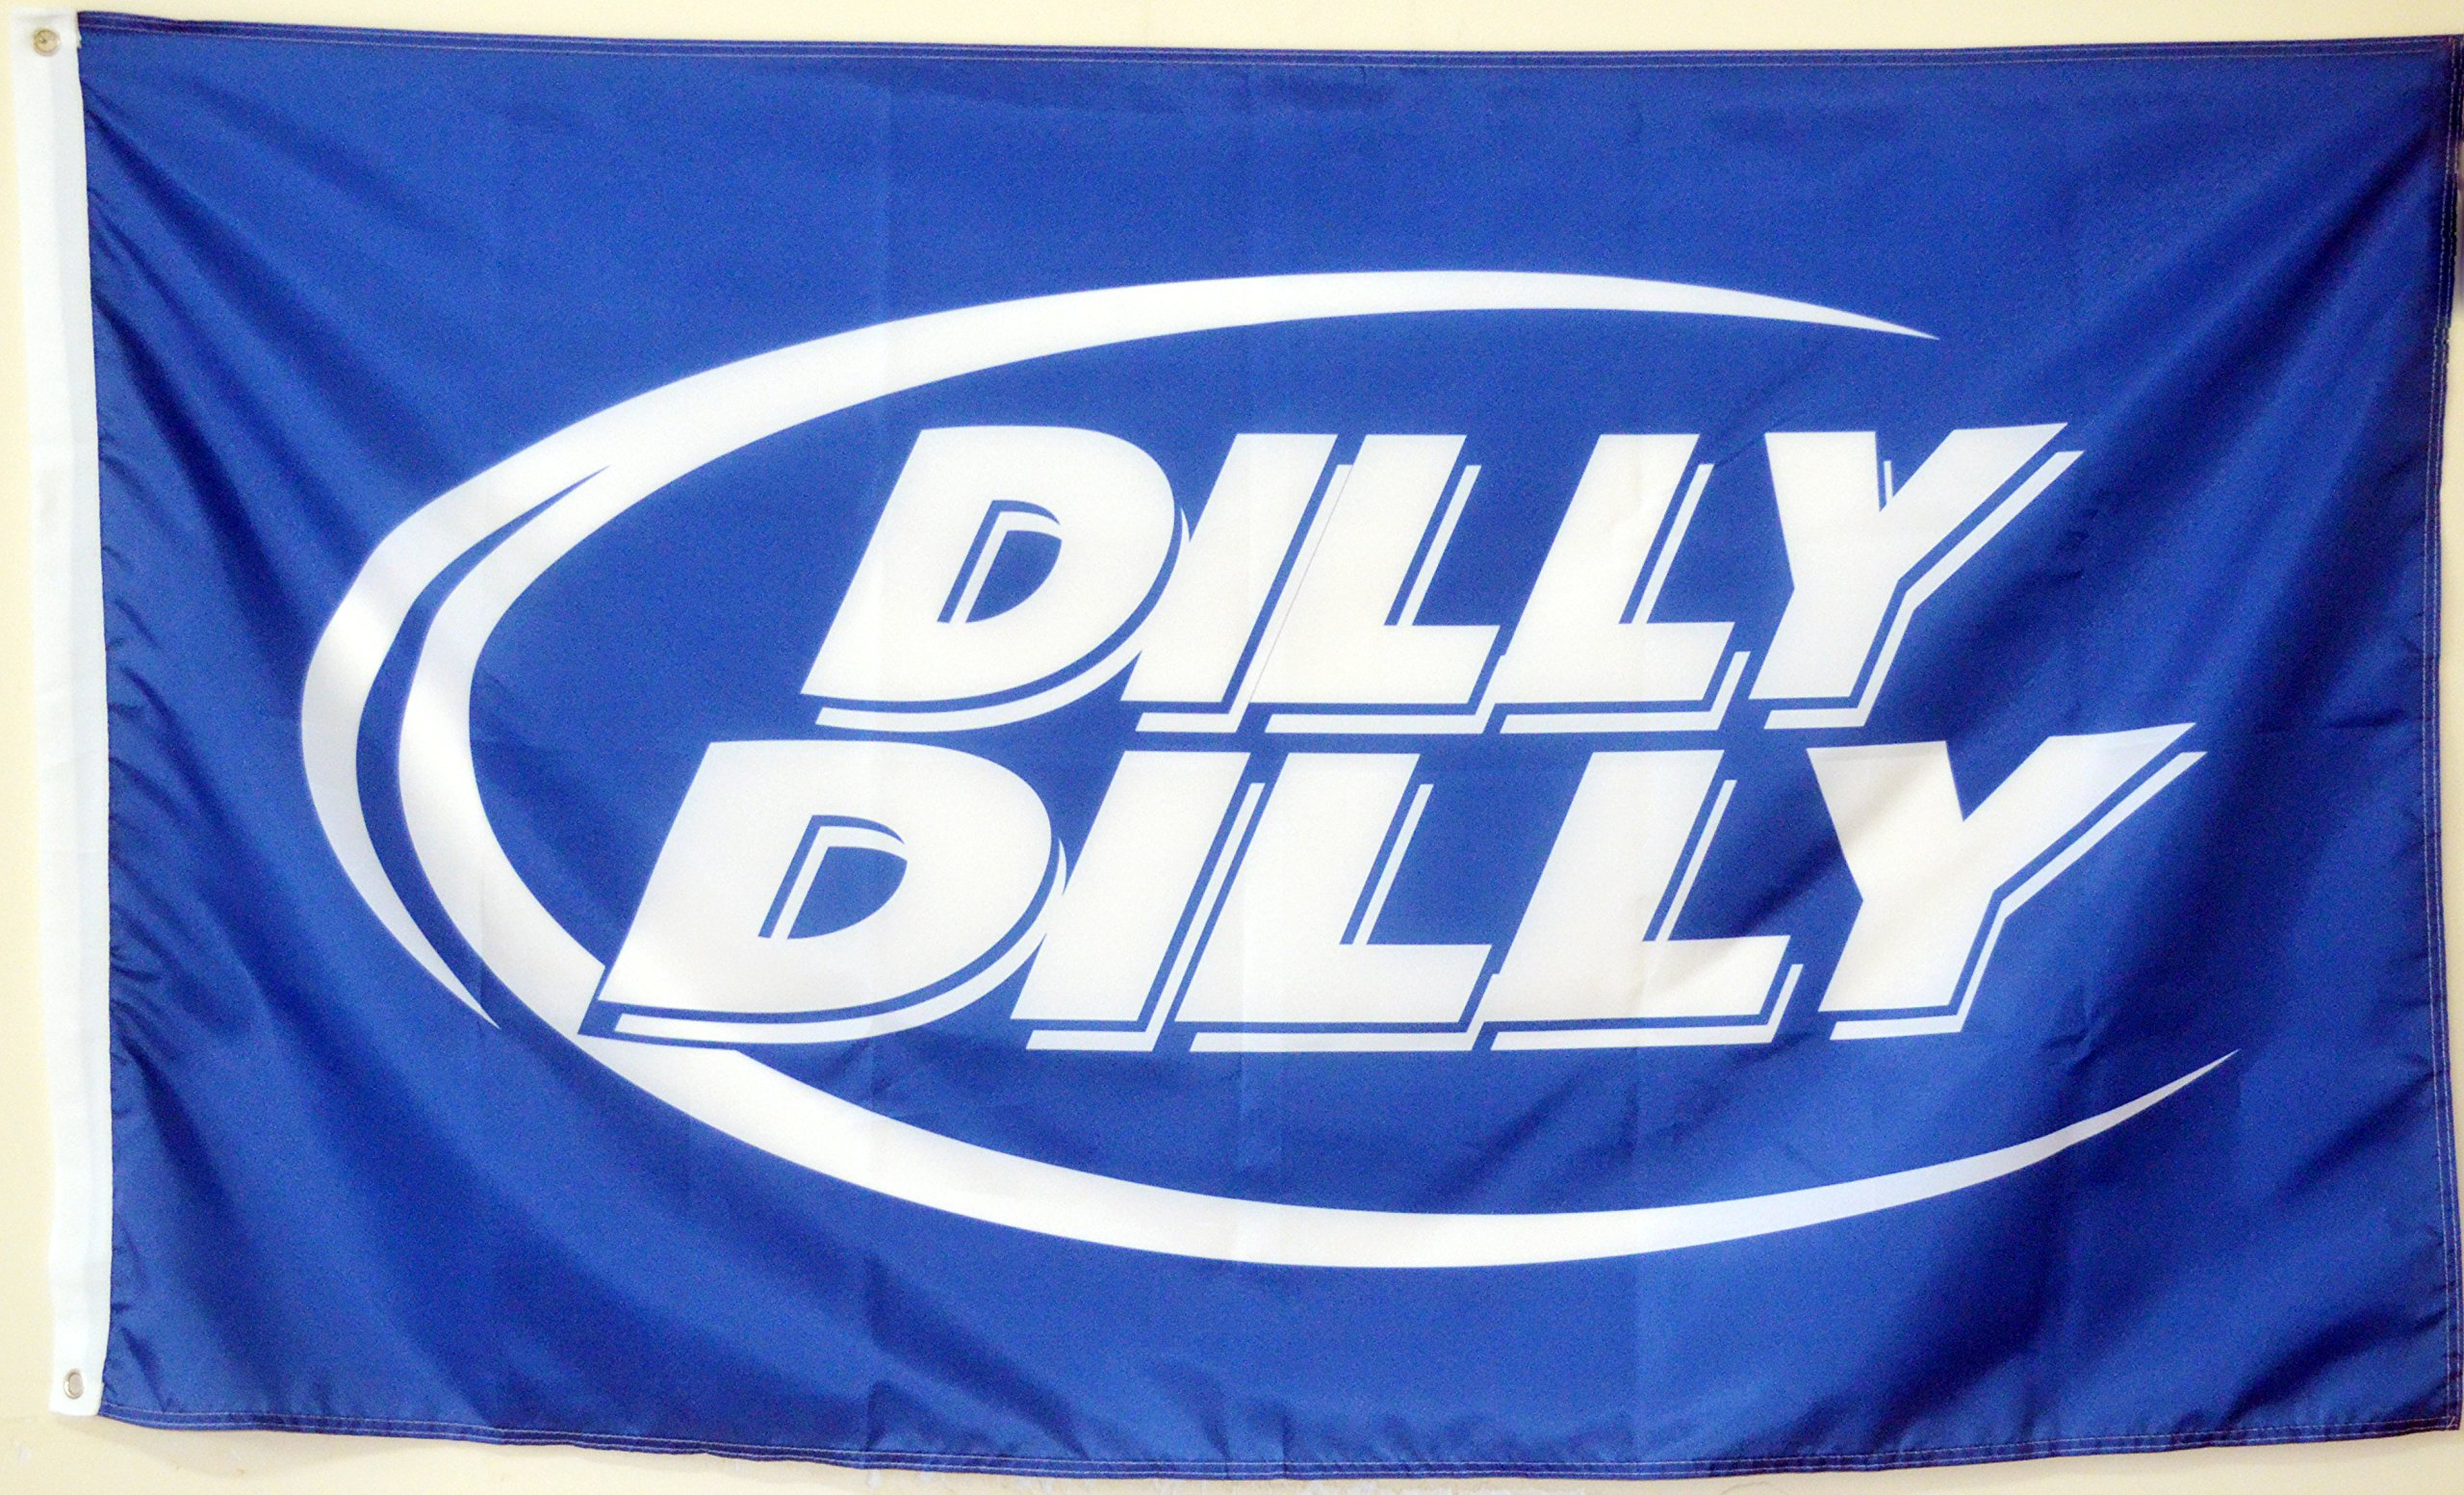 2But Bud Light Dilly Dilly Beer Flag Banner 3X5 Feet Blue